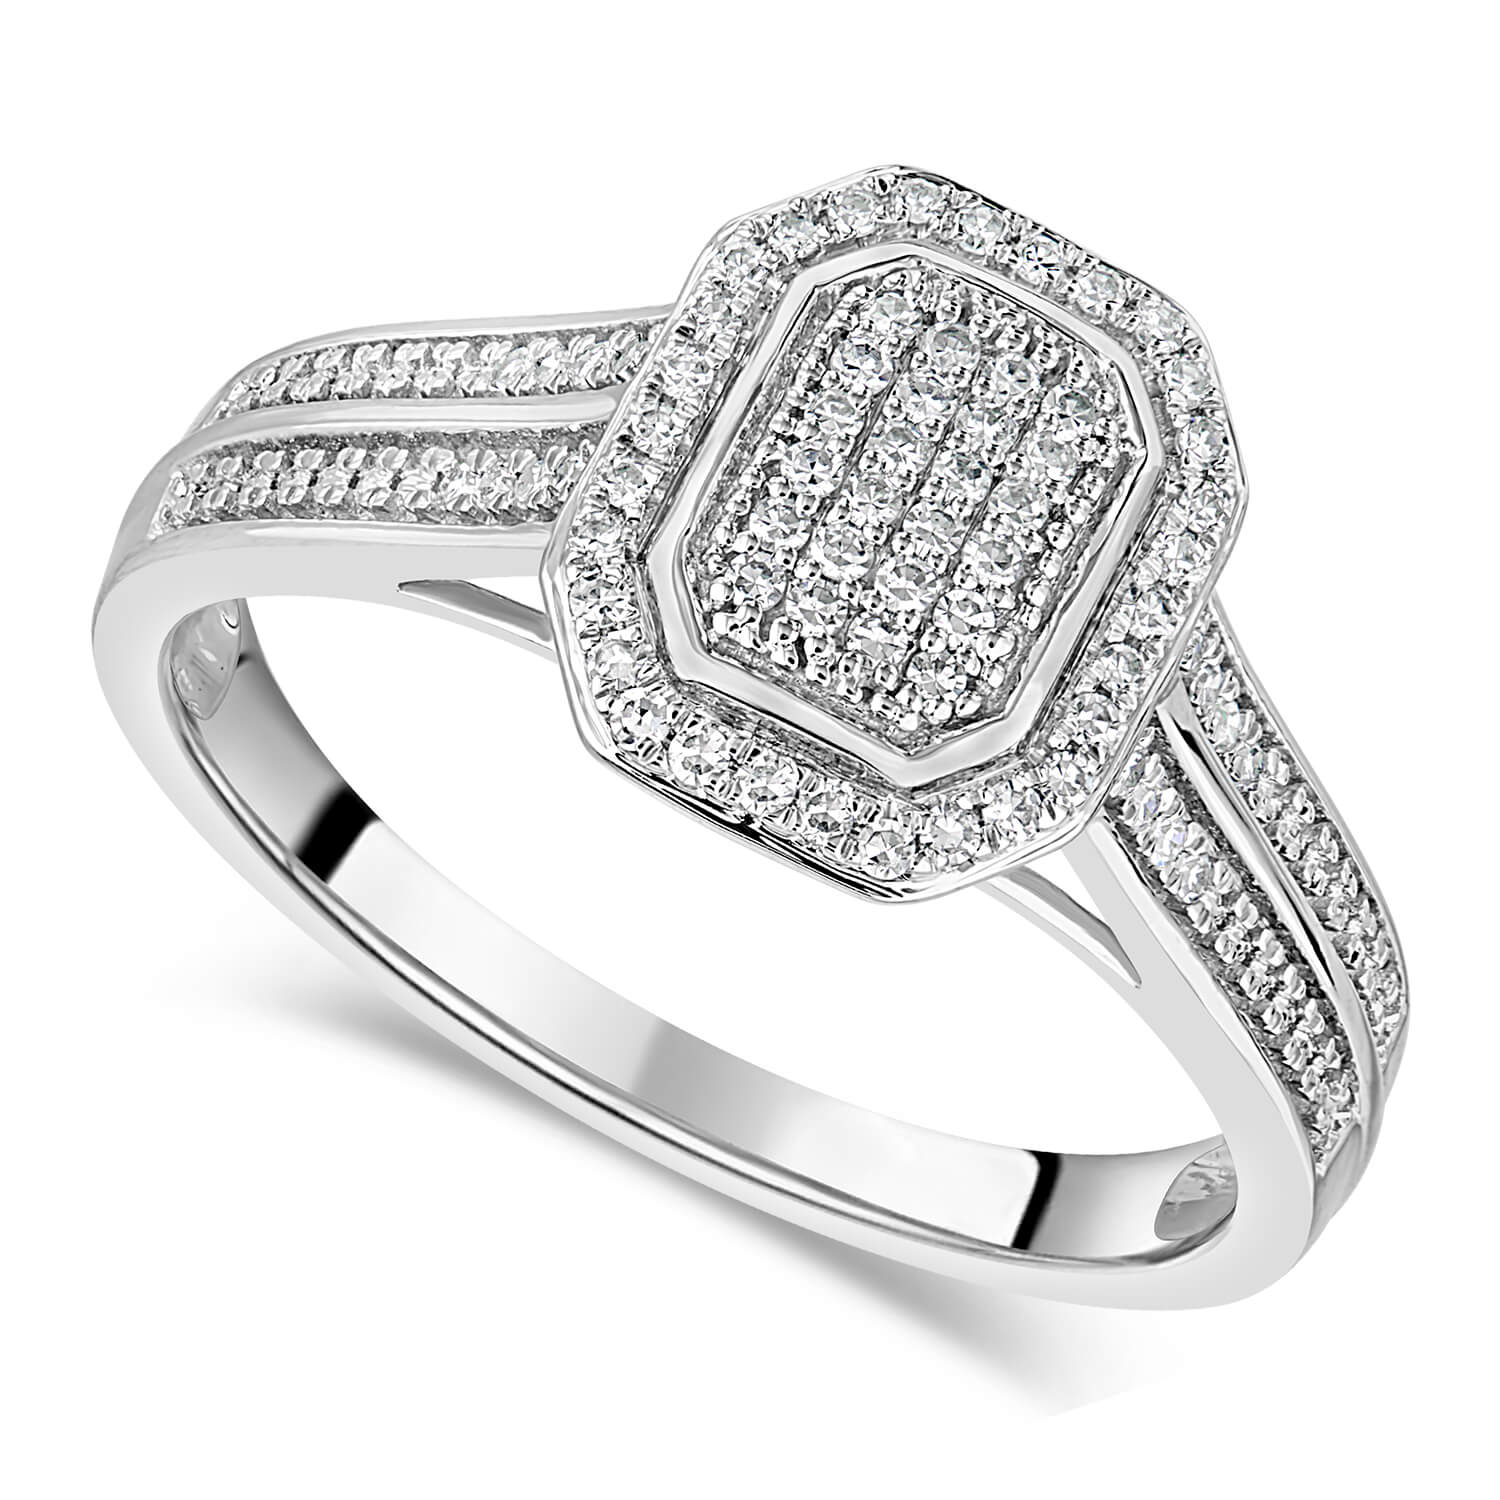 Special Price - 18ct White Gold 0.20ct Diamond Cluster Double Shoulder Ring